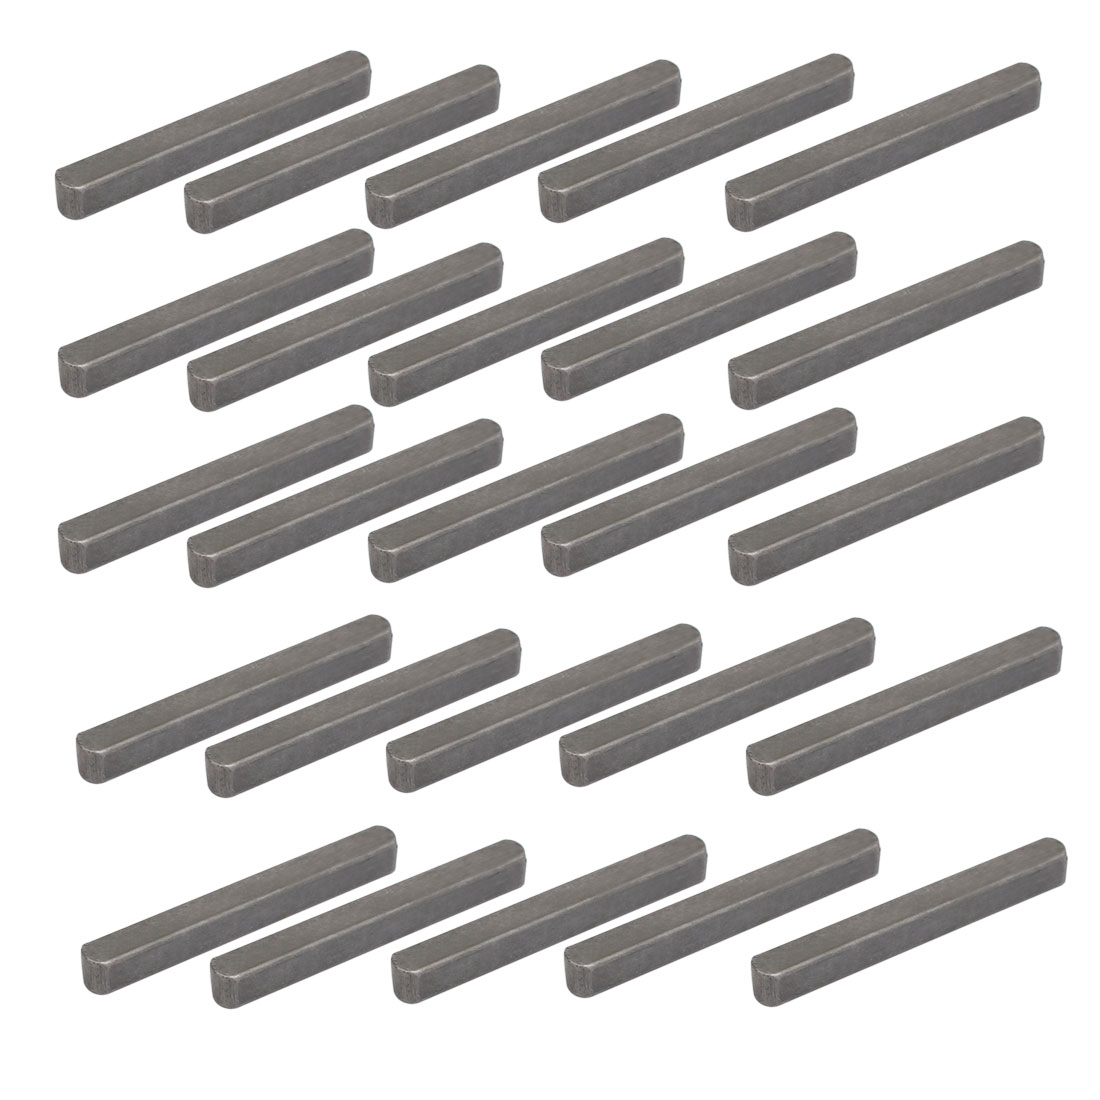 Unique Bargains 55mmx6mmx6mm Carbon Steel Key Stock To Lock Pulleys 25pcs - image 1 of 3